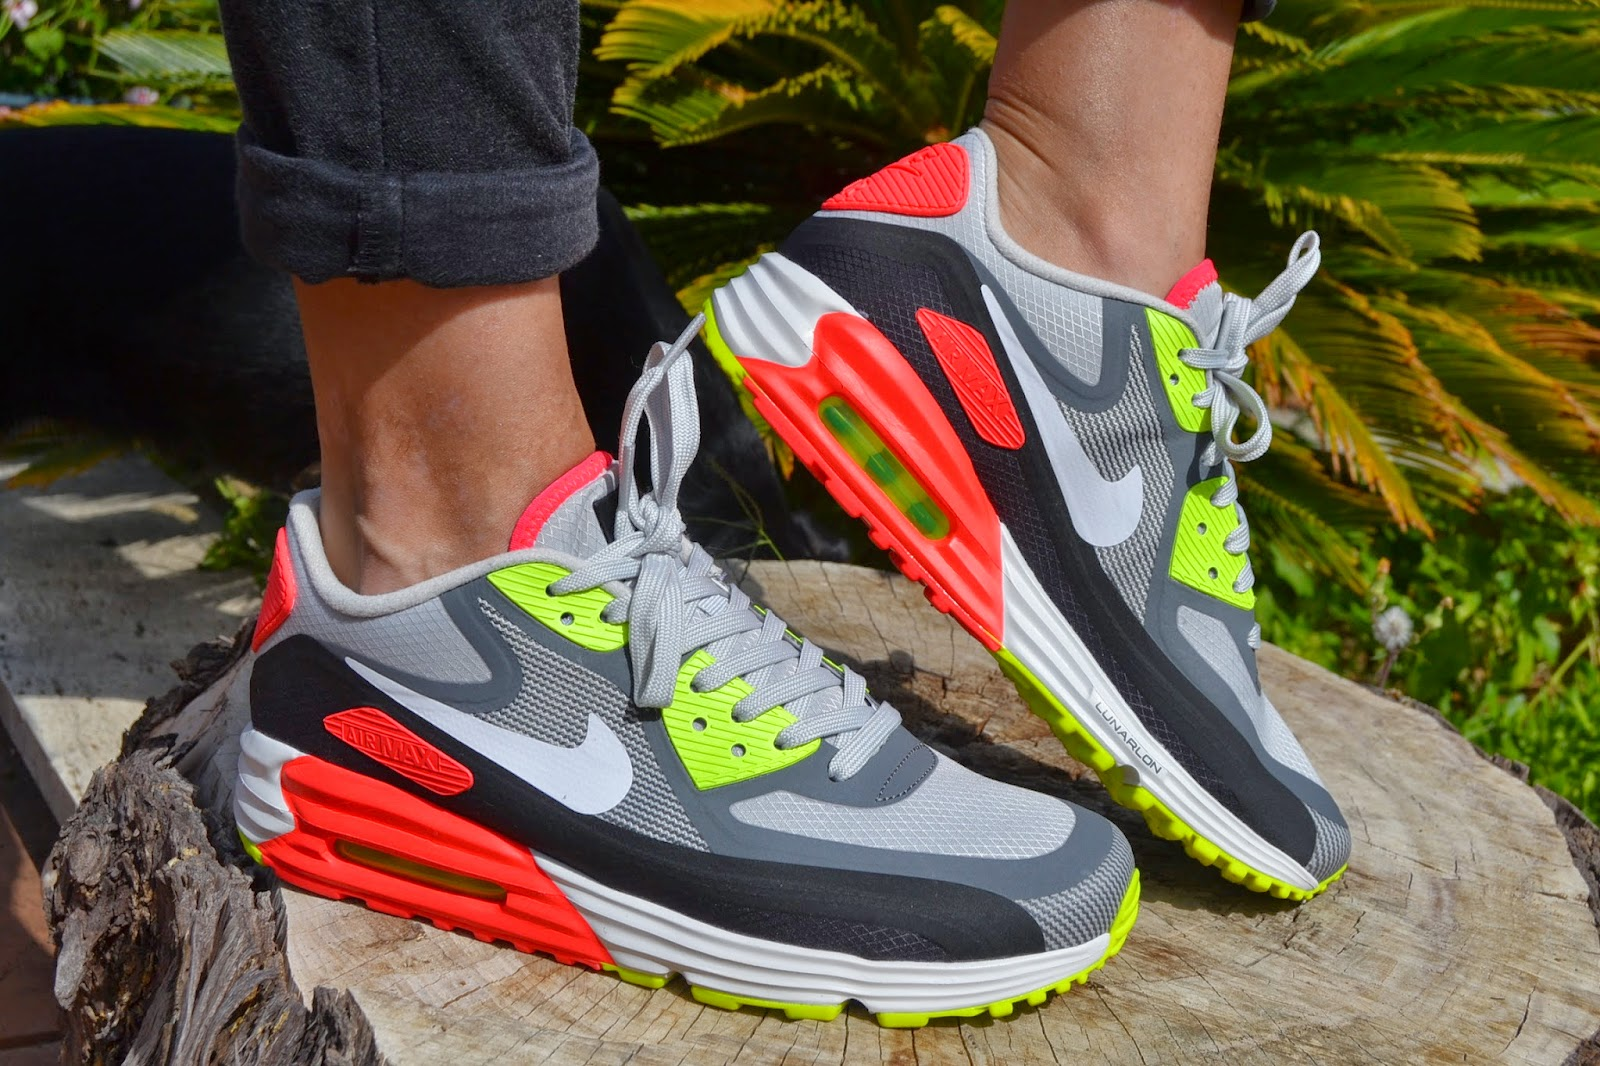 http://www.syriouslyinfashion.com/2014/10/nike-air-max-90-lunar-wr-infrared-volt.html